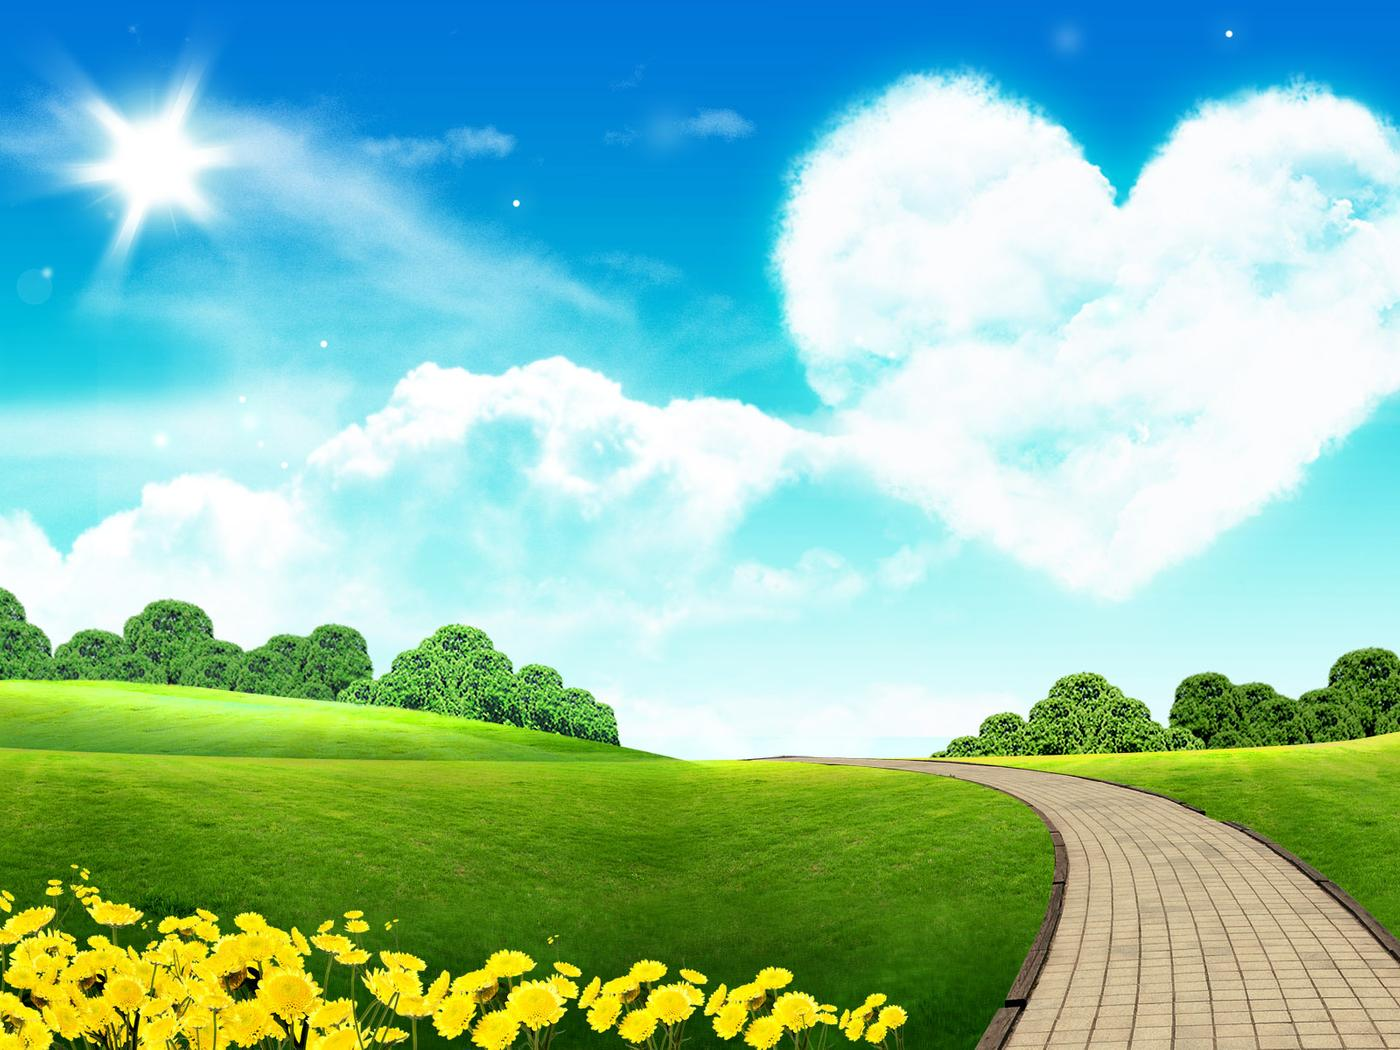 big heart on the sky - beautiful nature landscape wallpaper download